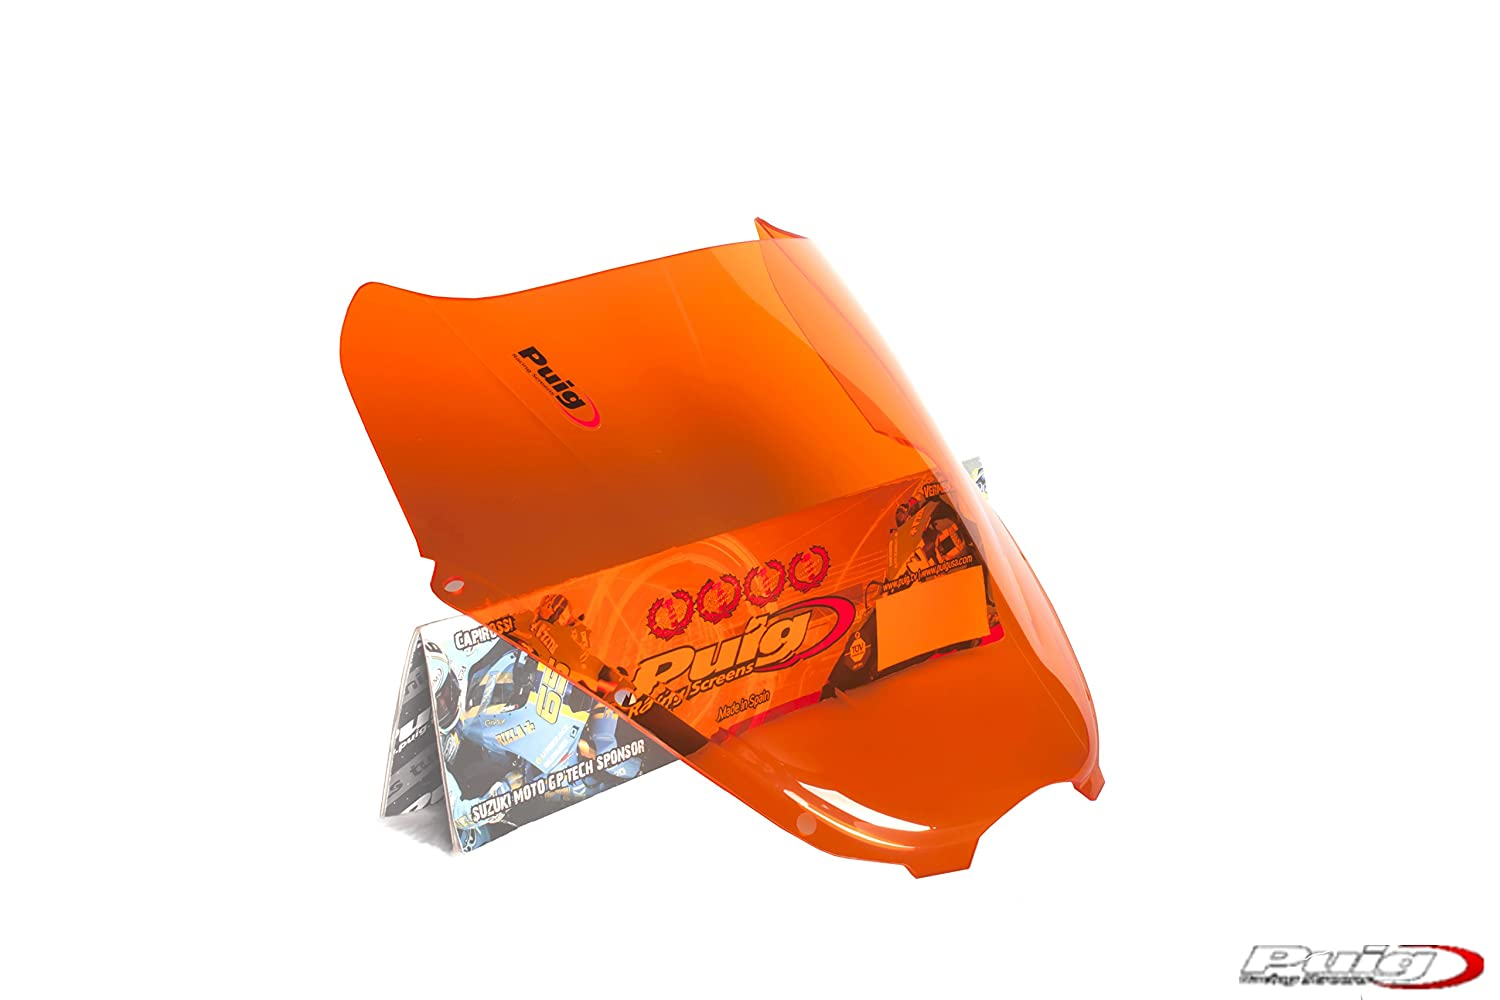 Puig 4184T Racing Screen for Hyosung GT125R 06'-13', GT250 iR 06'-17', GT650 R 05'-17', Orange GT250 iR 06'-17' GT650 R 05'-17' Motoplastic S.A.